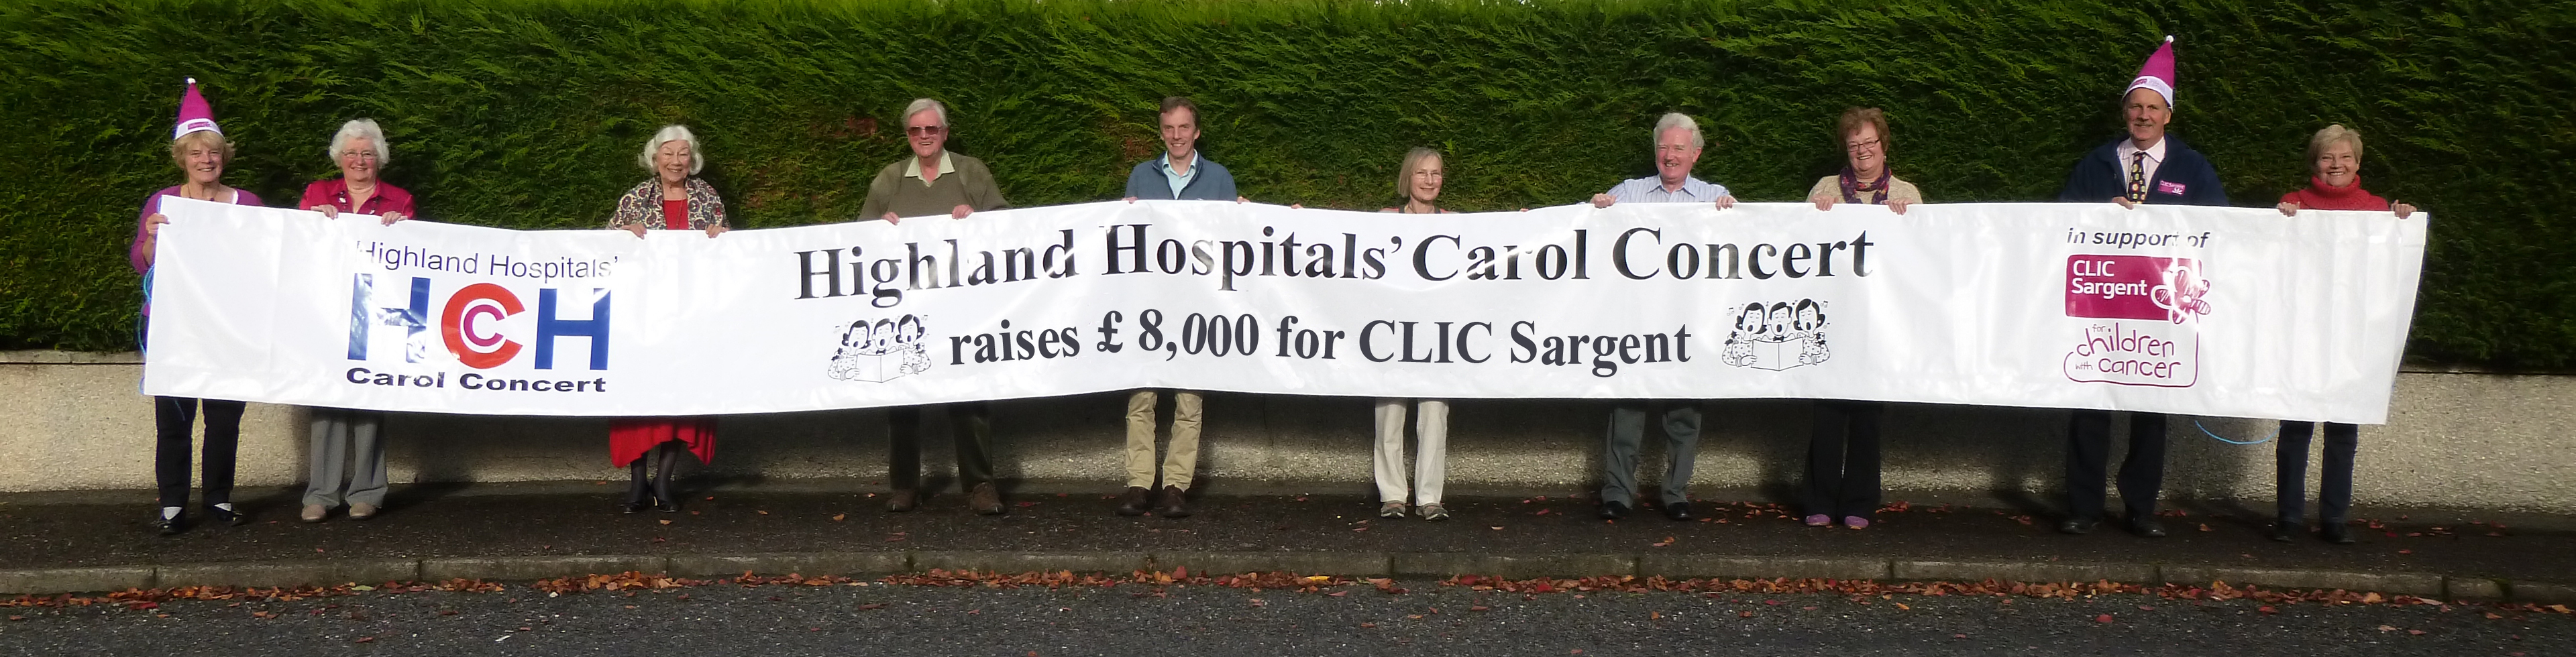 £8,000 has been donated to CLIC Sargent